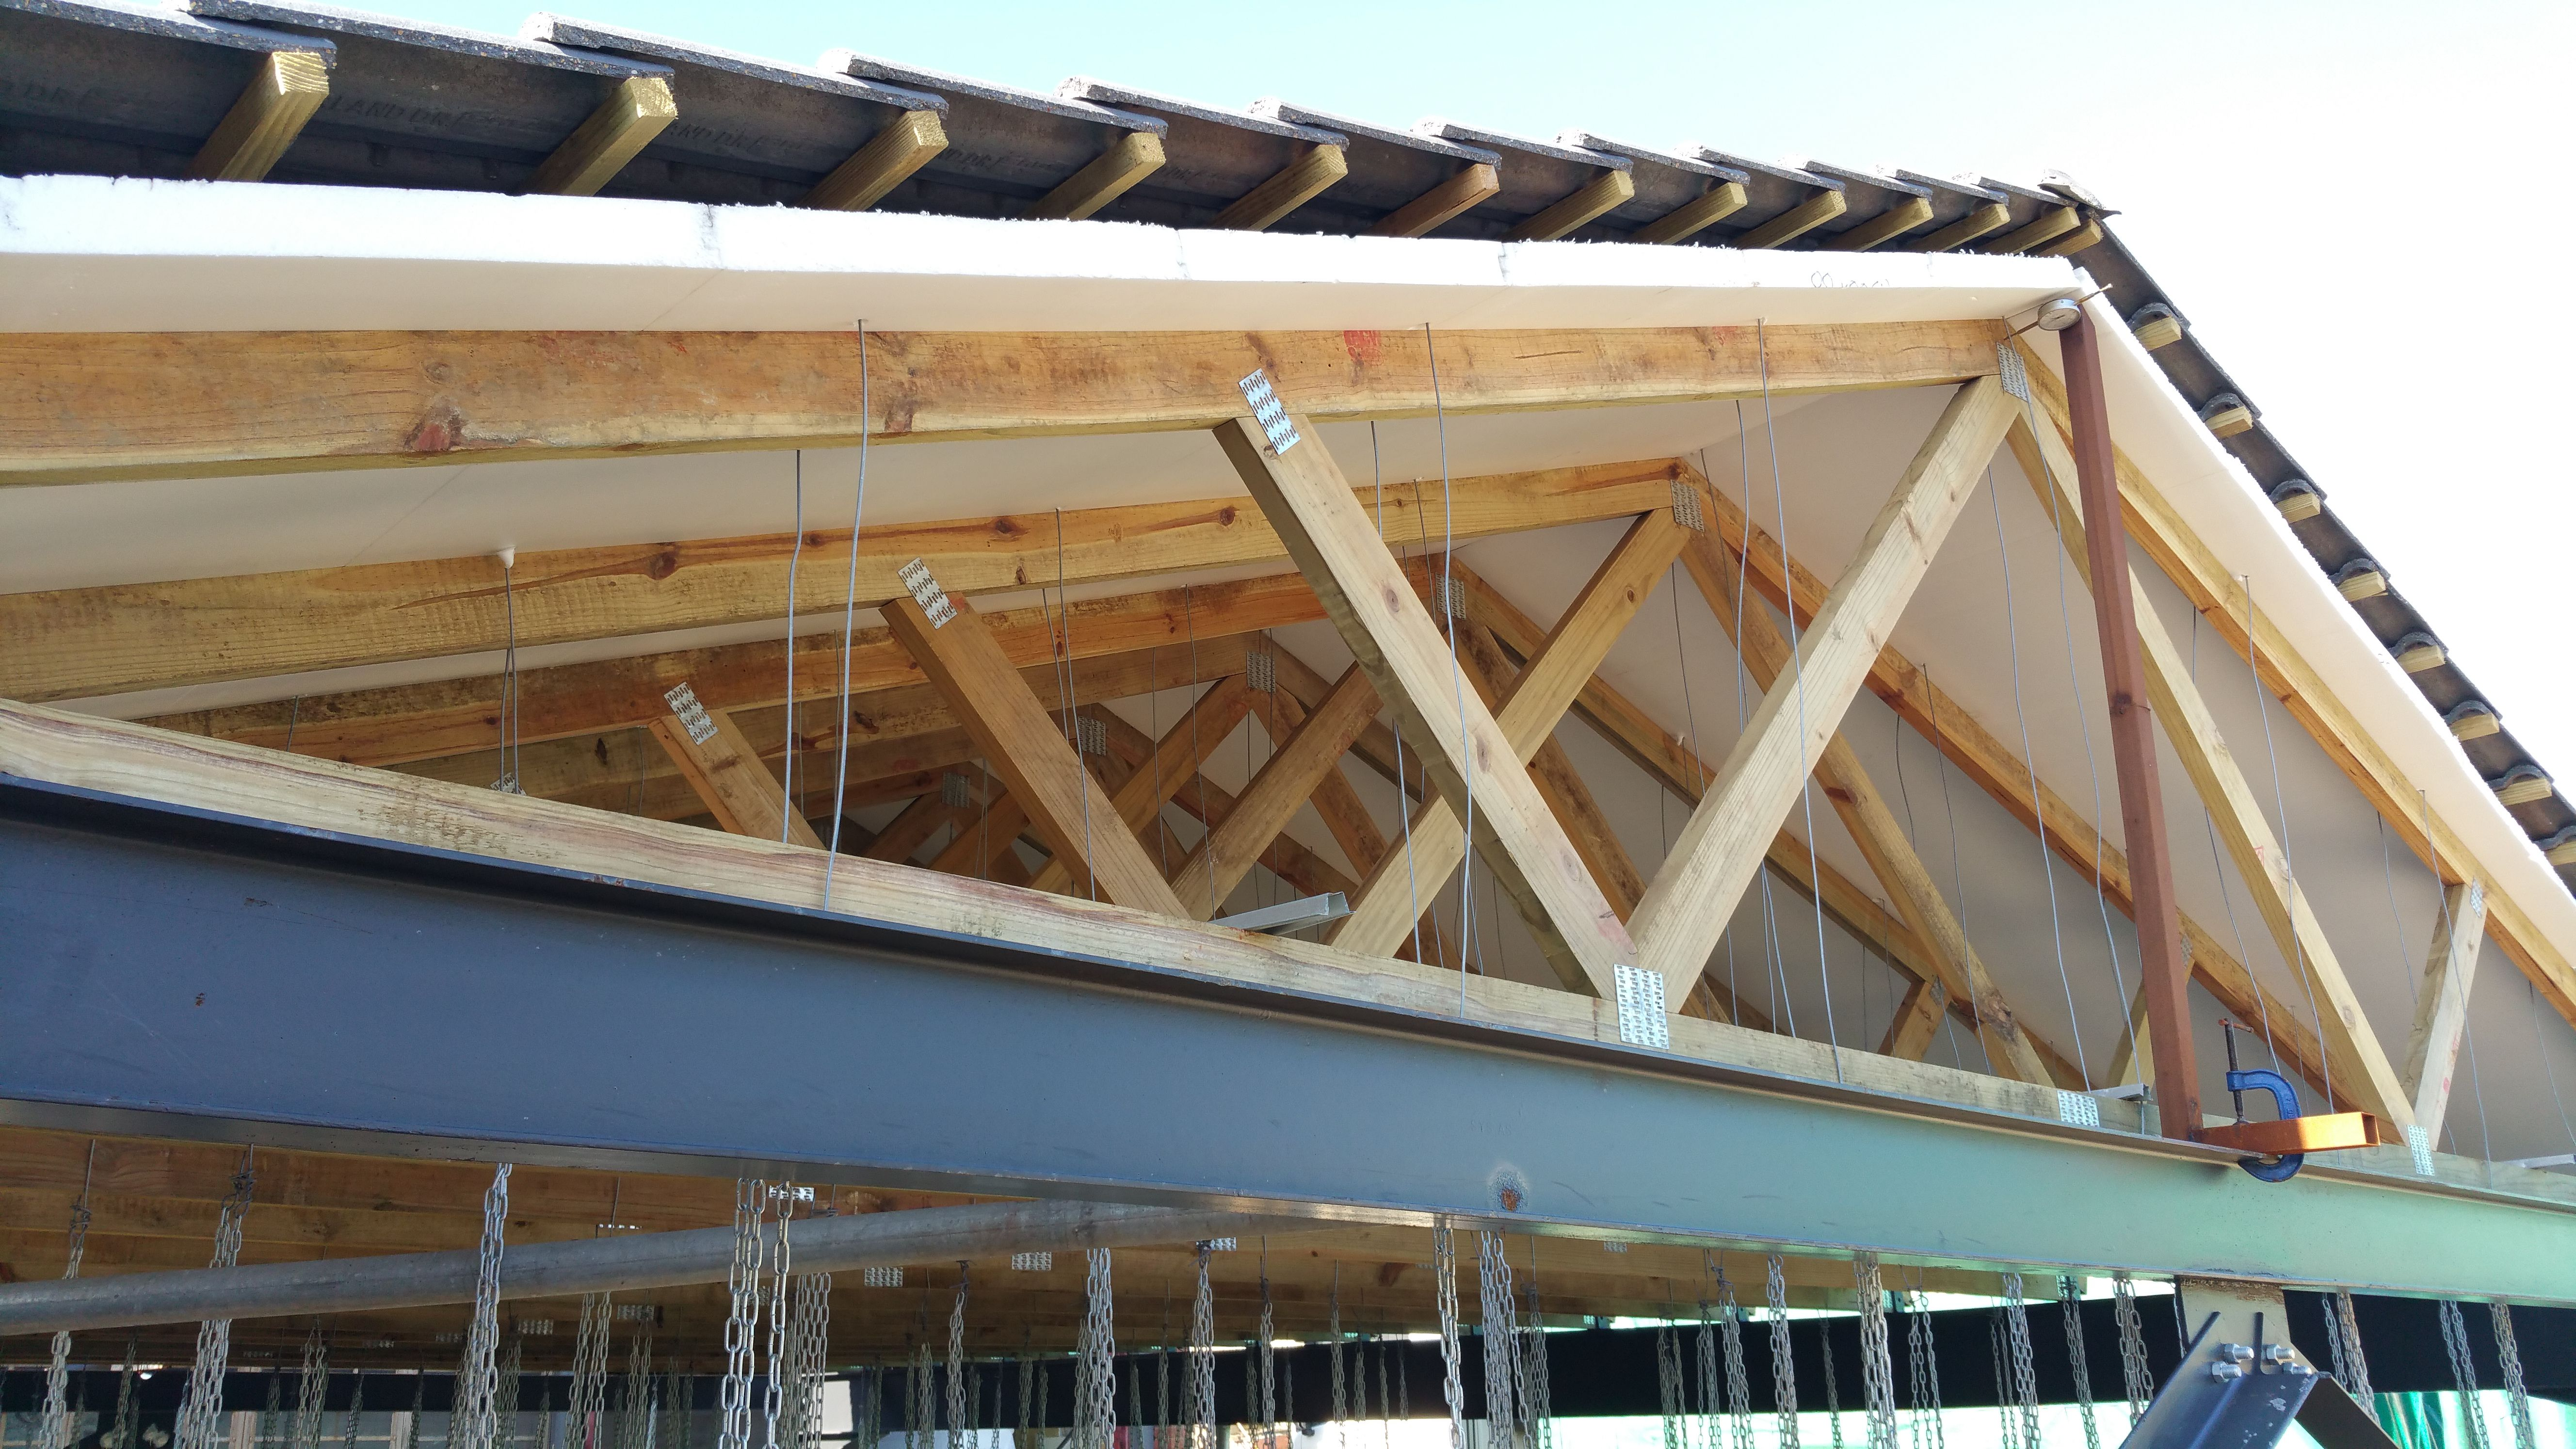 Over Truss Under Roof Sheet Insulation In 2020 Roofing Sheets Roof Insulation Sheets